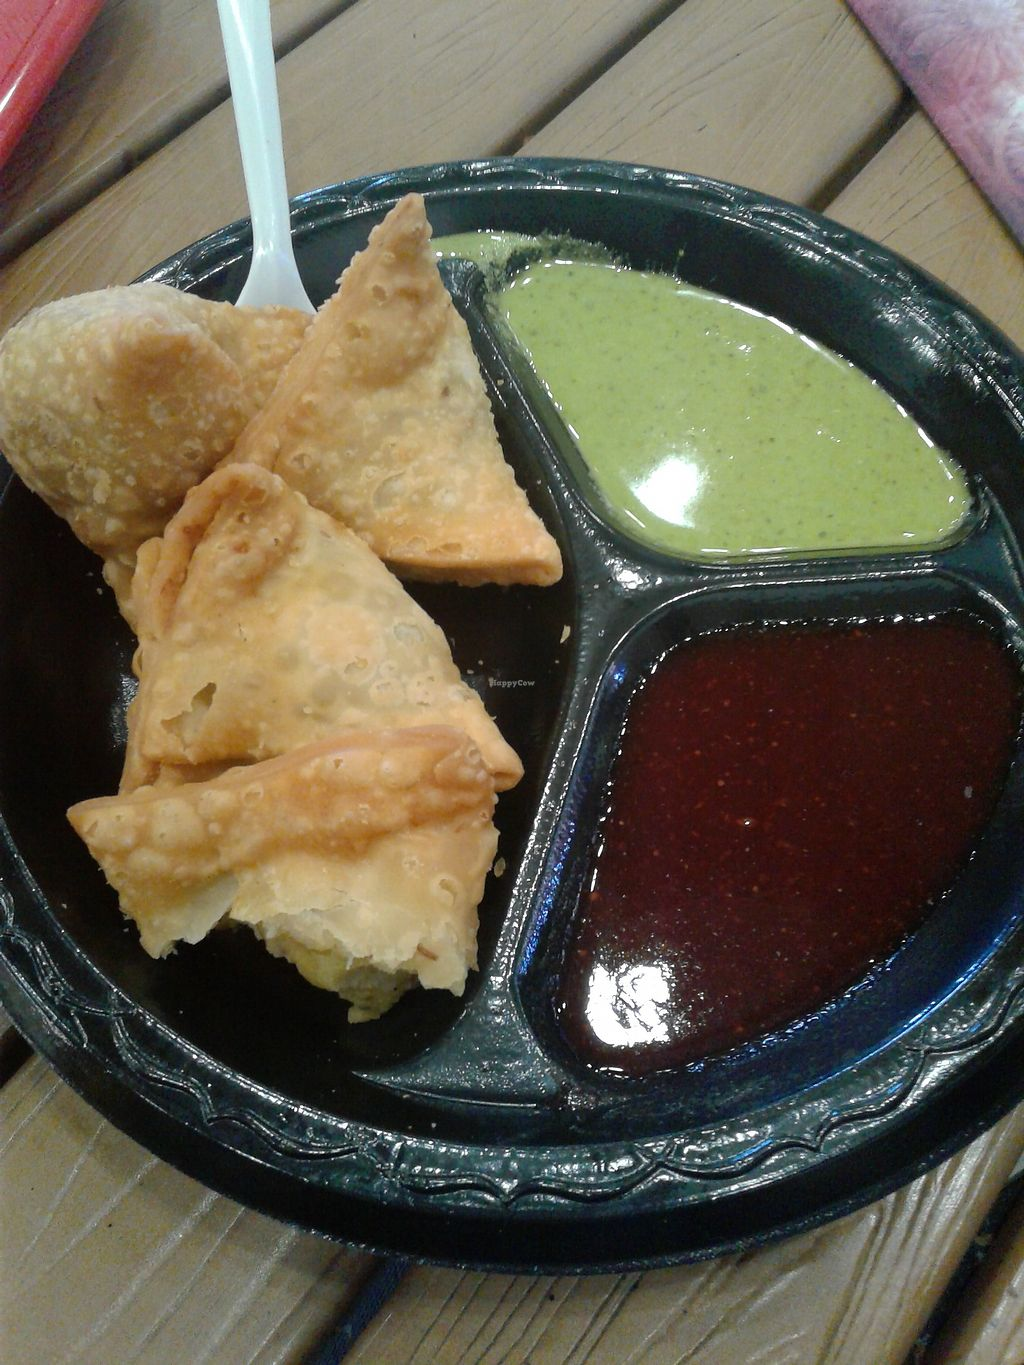 """Photo of Shayona  by <a href=""""/members/profile/anastronomy"""">anastronomy</a> <br/>Delicious samosas ? <br/> July 31, 2017  - <a href='/contact/abuse/image/46965/287202'>Report</a>"""